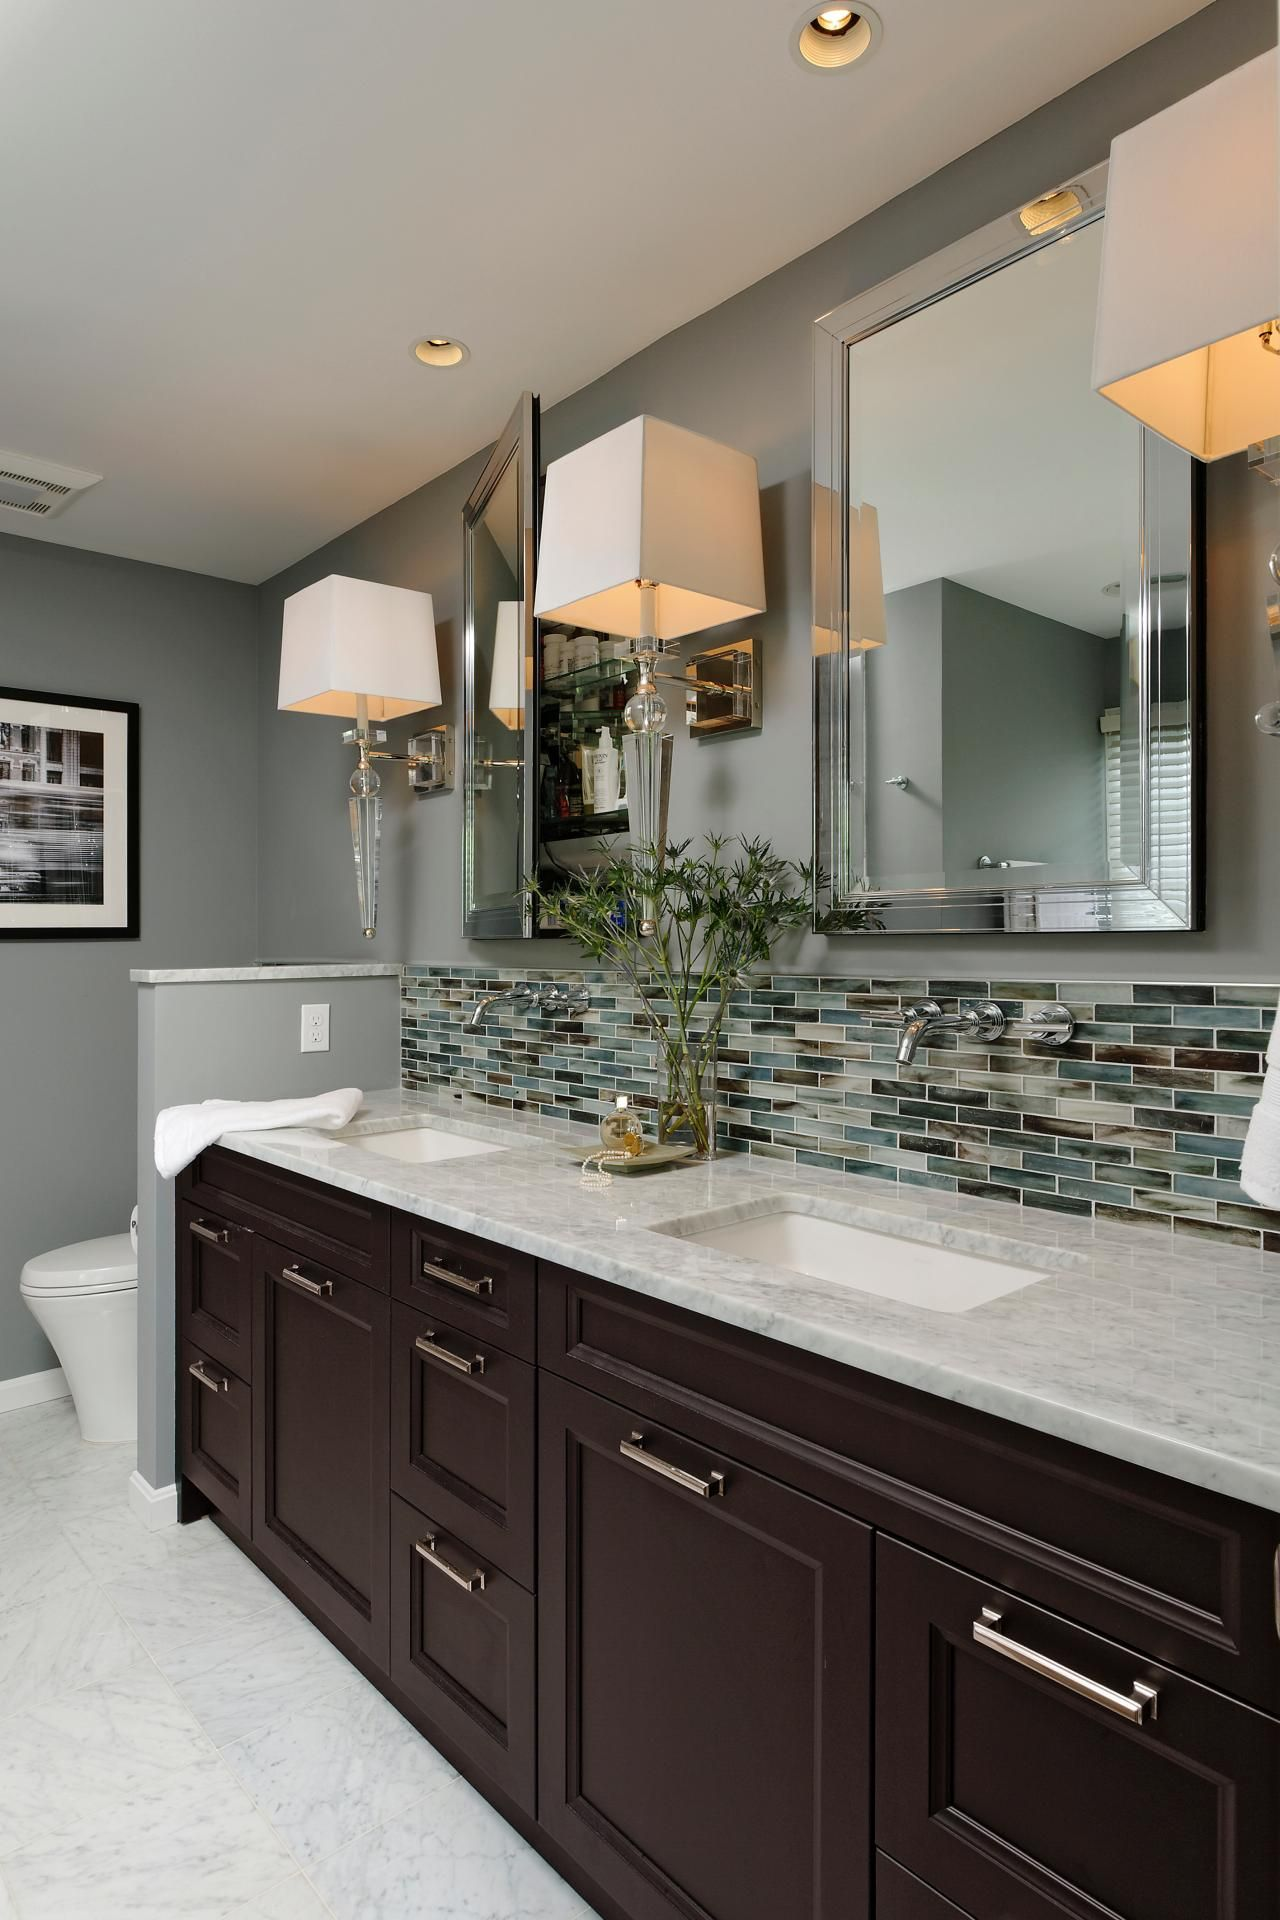 This gray contemporary bathroom features a double vanity Bathroom designs with tile backsplashes